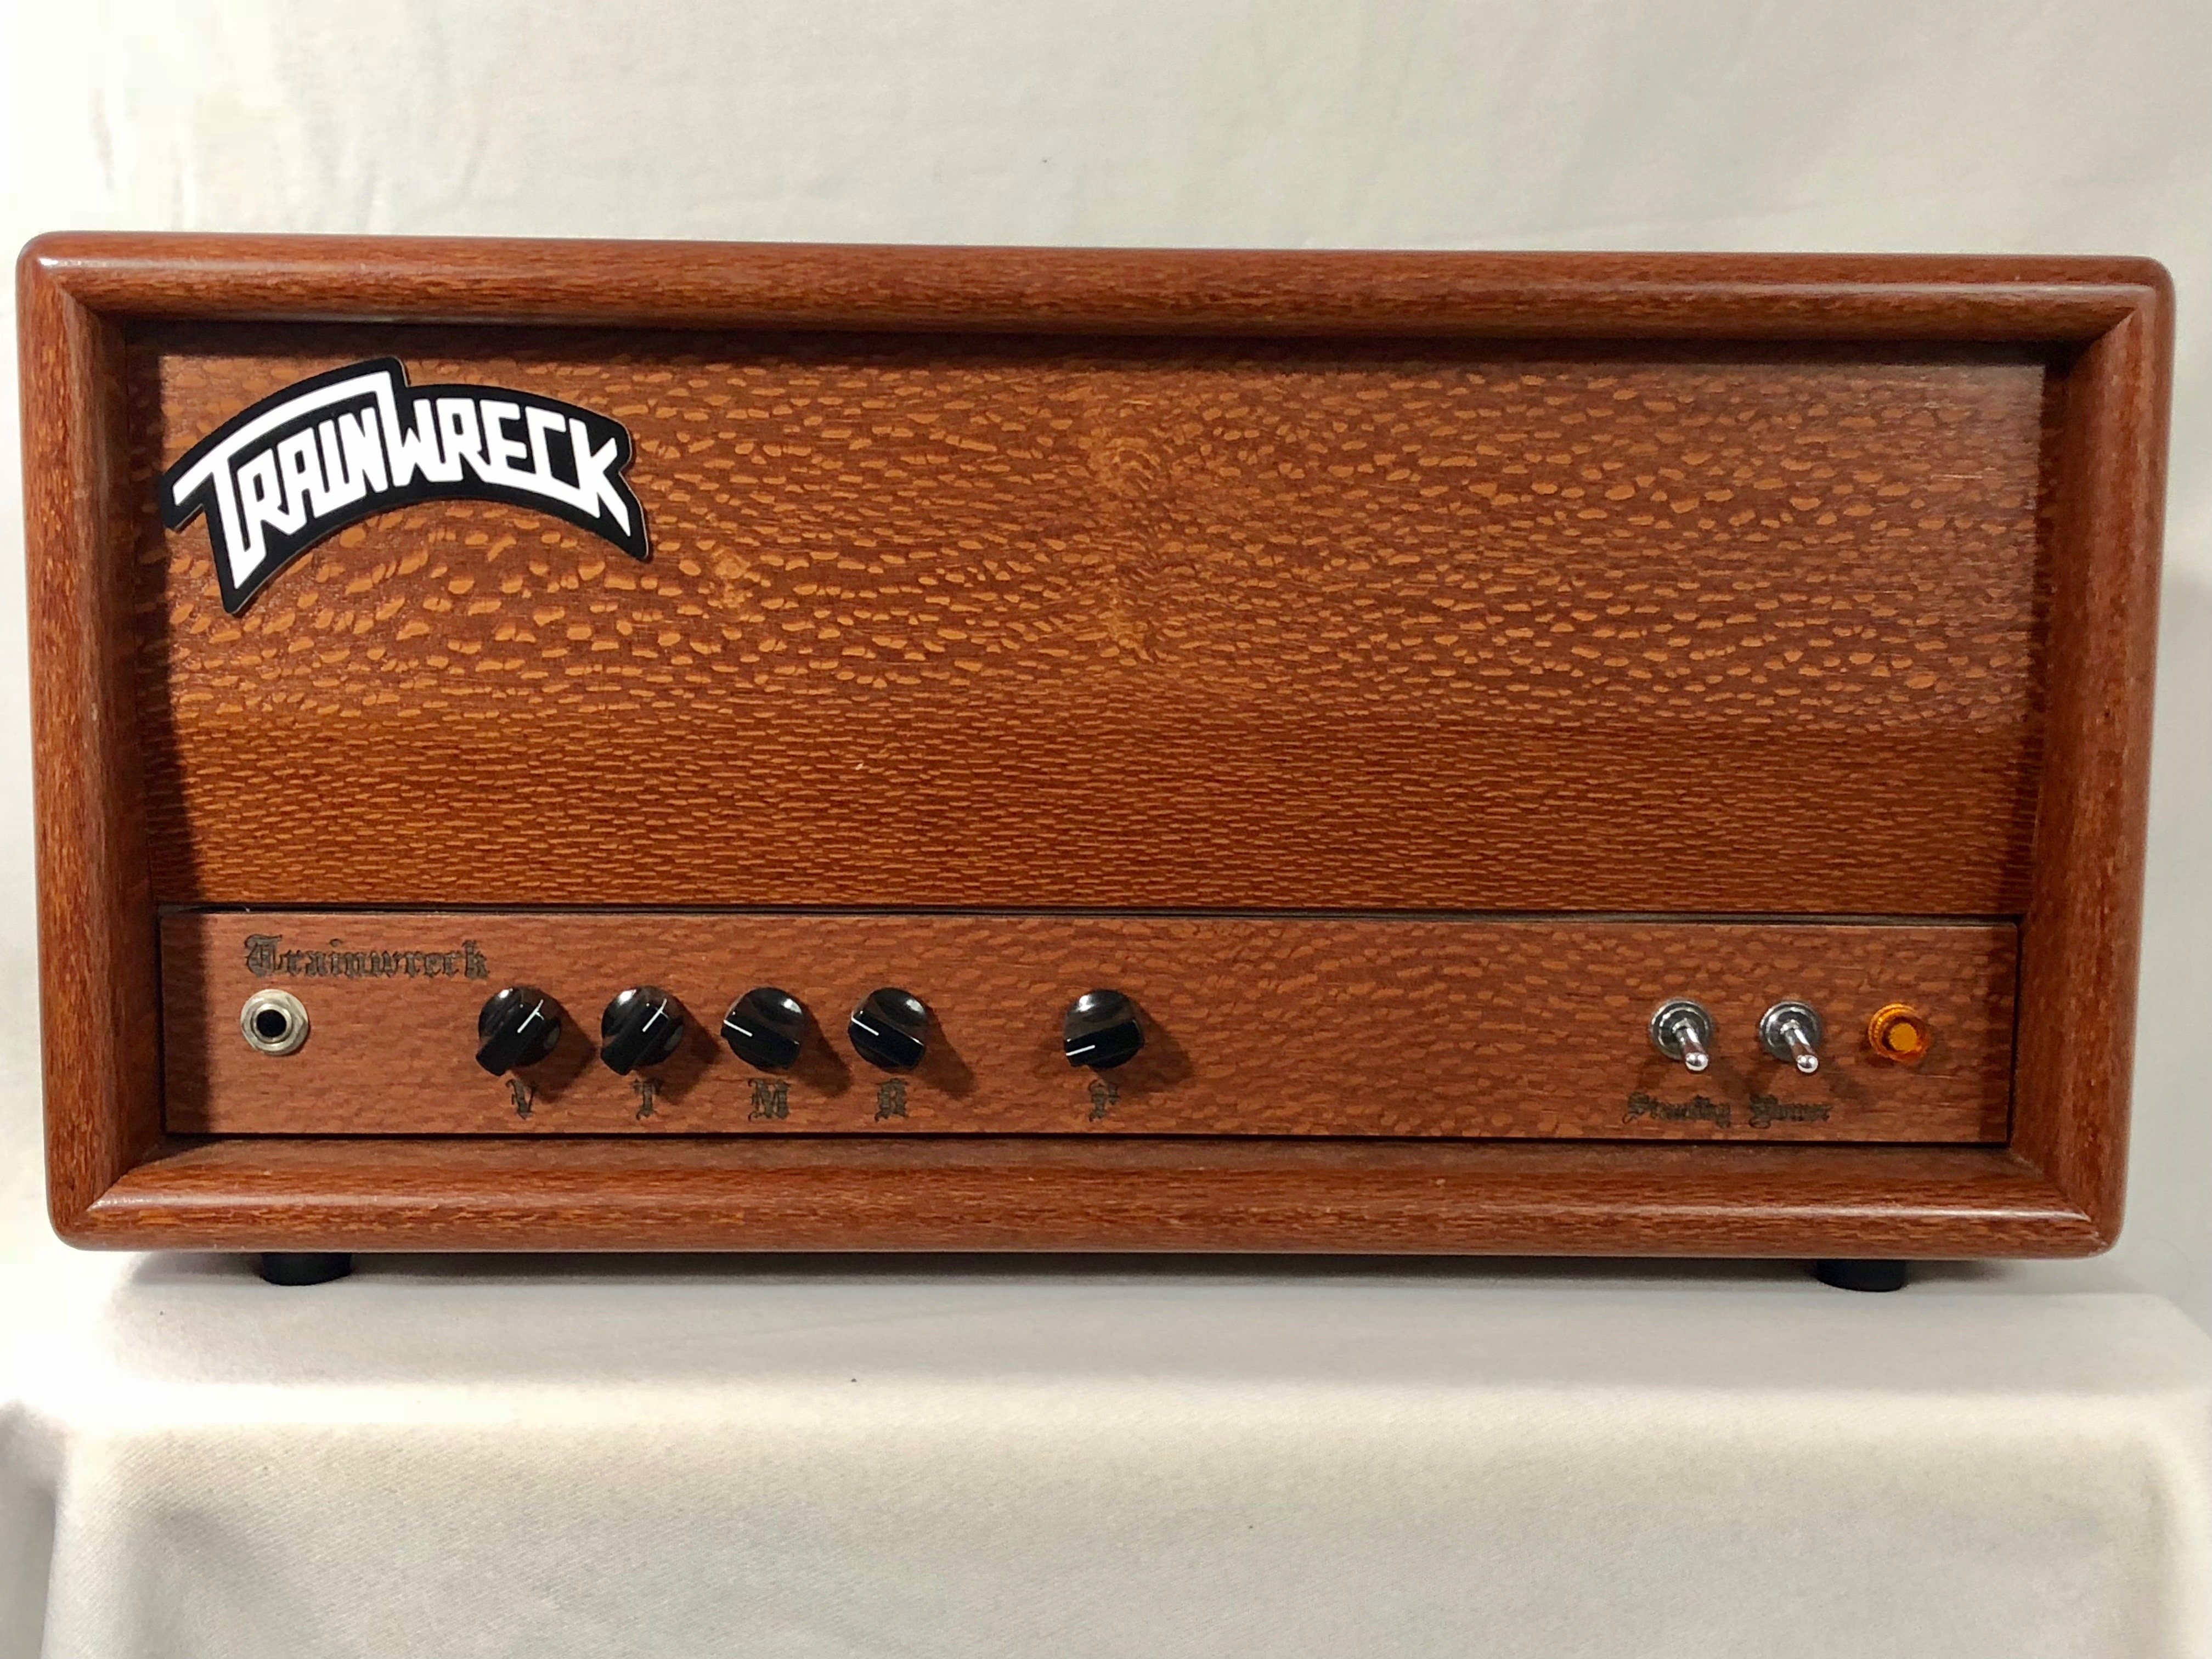 Trainwreck Liverpool 18w – NOS Tubes & Upgrade Cab